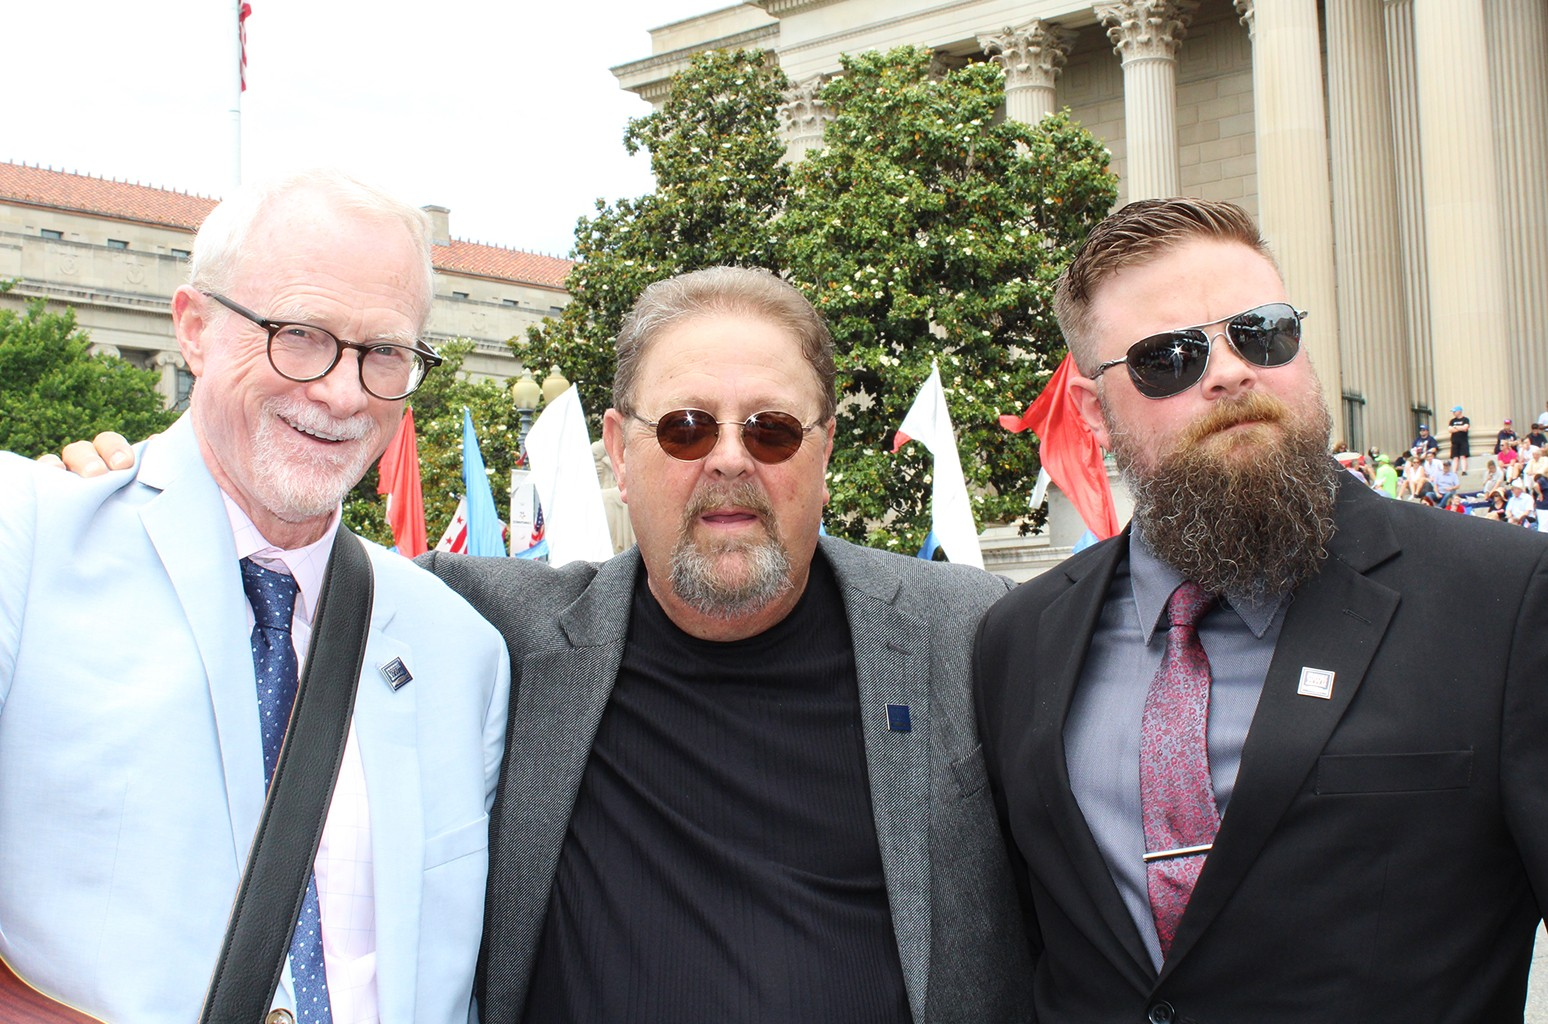 peration Song co-founder Bob Regan (left) performed with veterans Jimmy Sells (center) and Ian Wagner at the start of the 2016 Memorial Day Parade in front of the Library of Congress in Washington, D.C.